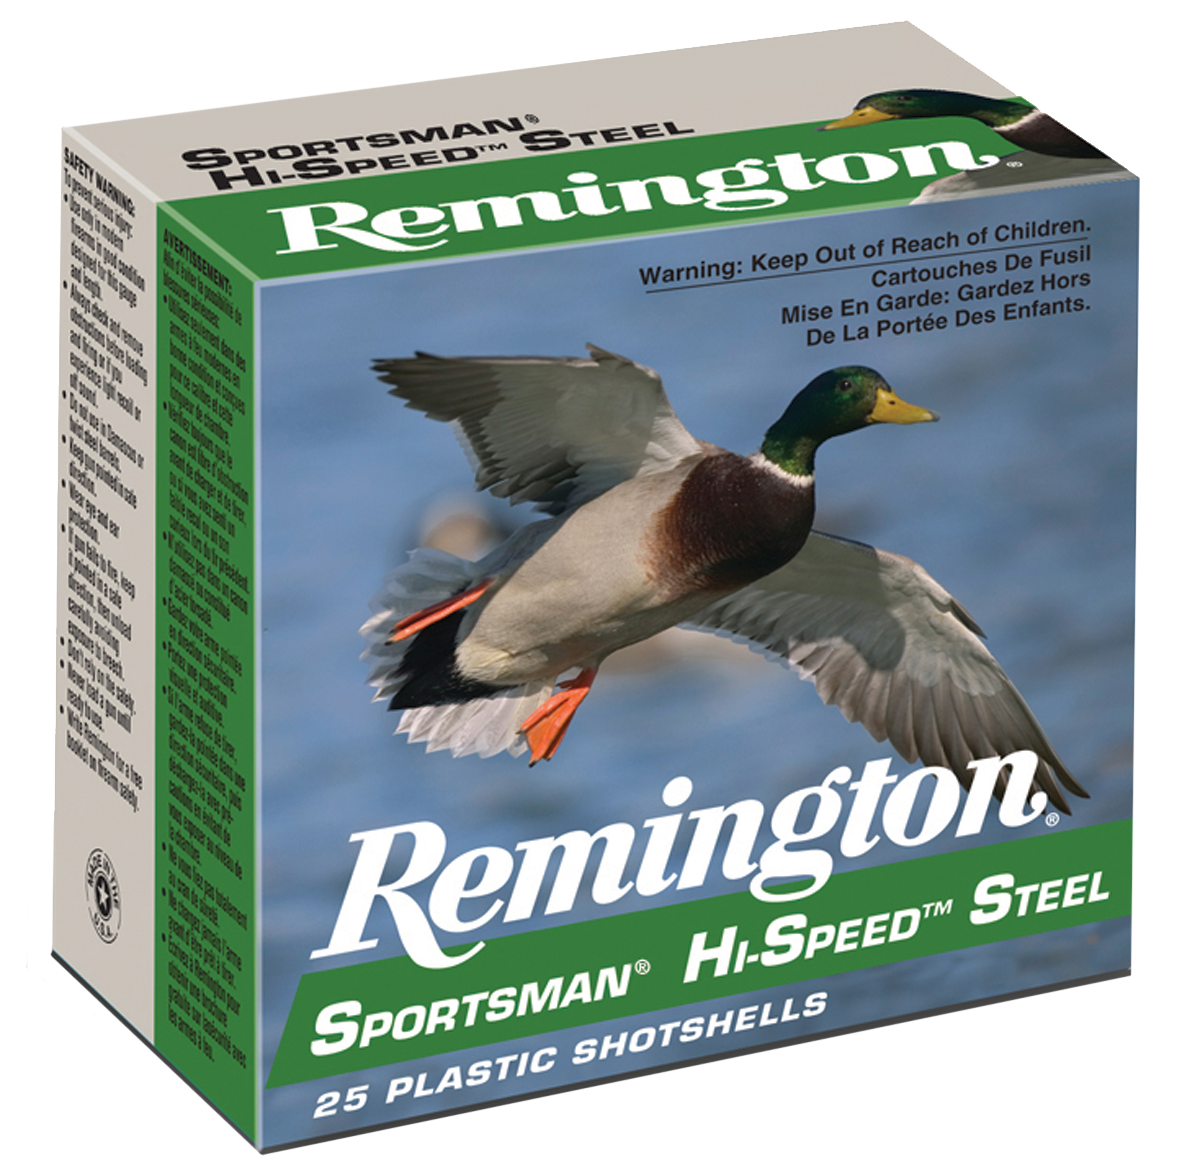 Remington Sportsman Hi-Speed Waterfowl Ammunition 10 Gauge 3-1/2